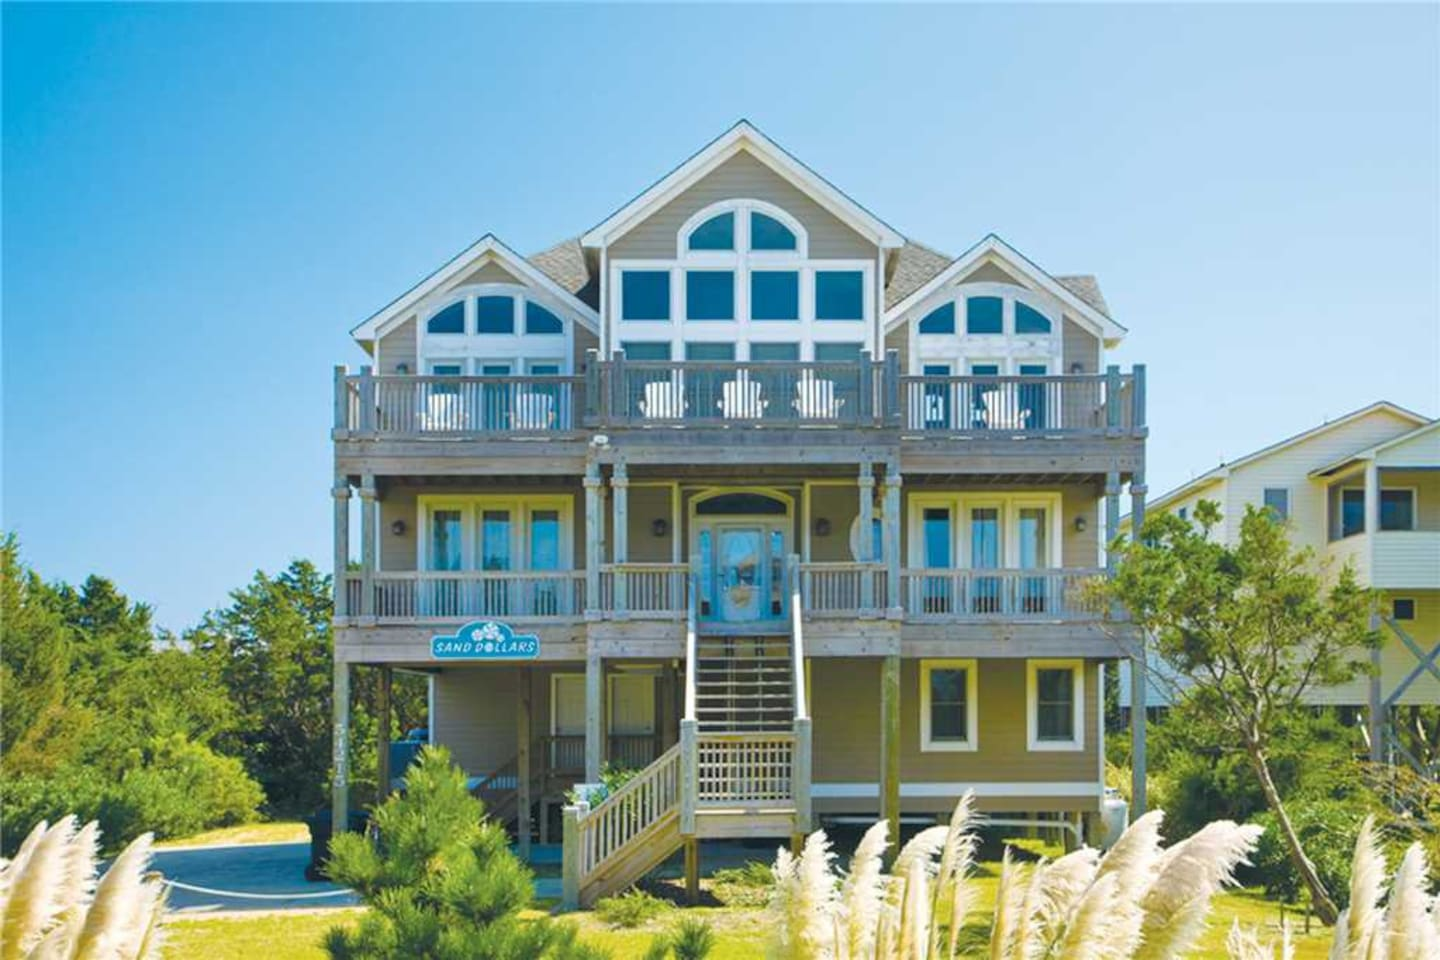 Surf-or-Sound-Realty-Sand-Dollars-700-Exterior